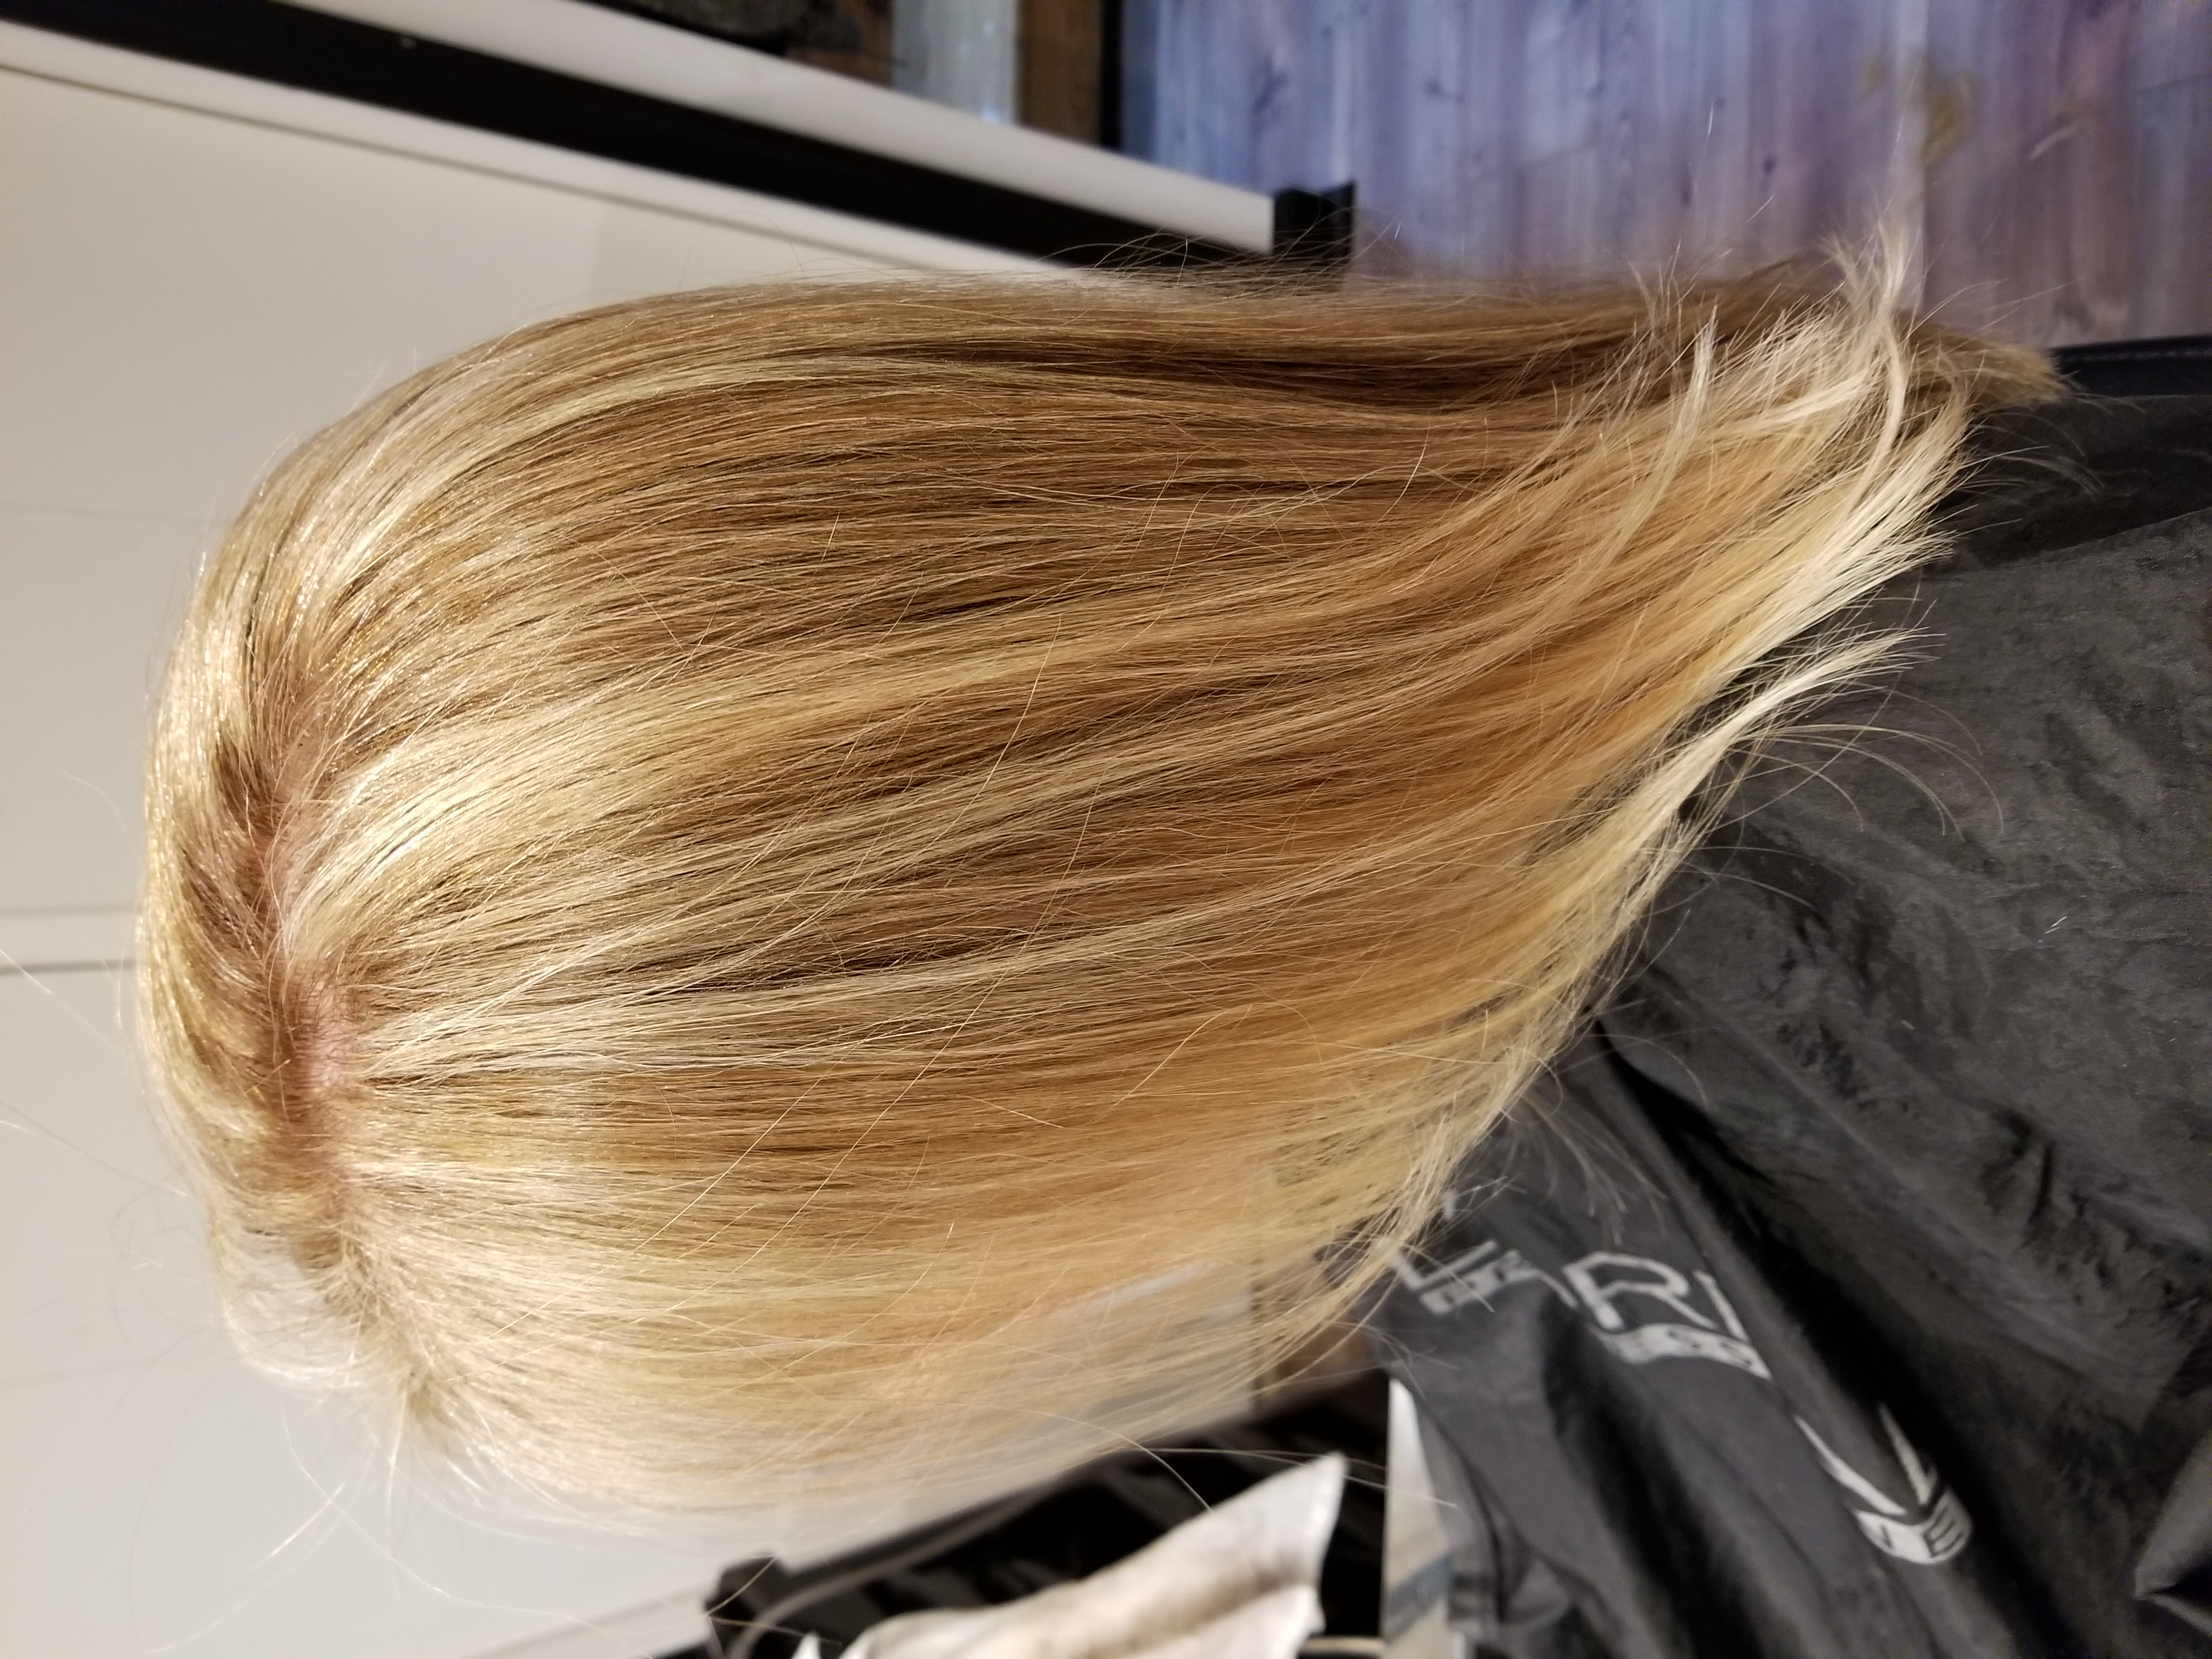 Refreshed her highlights